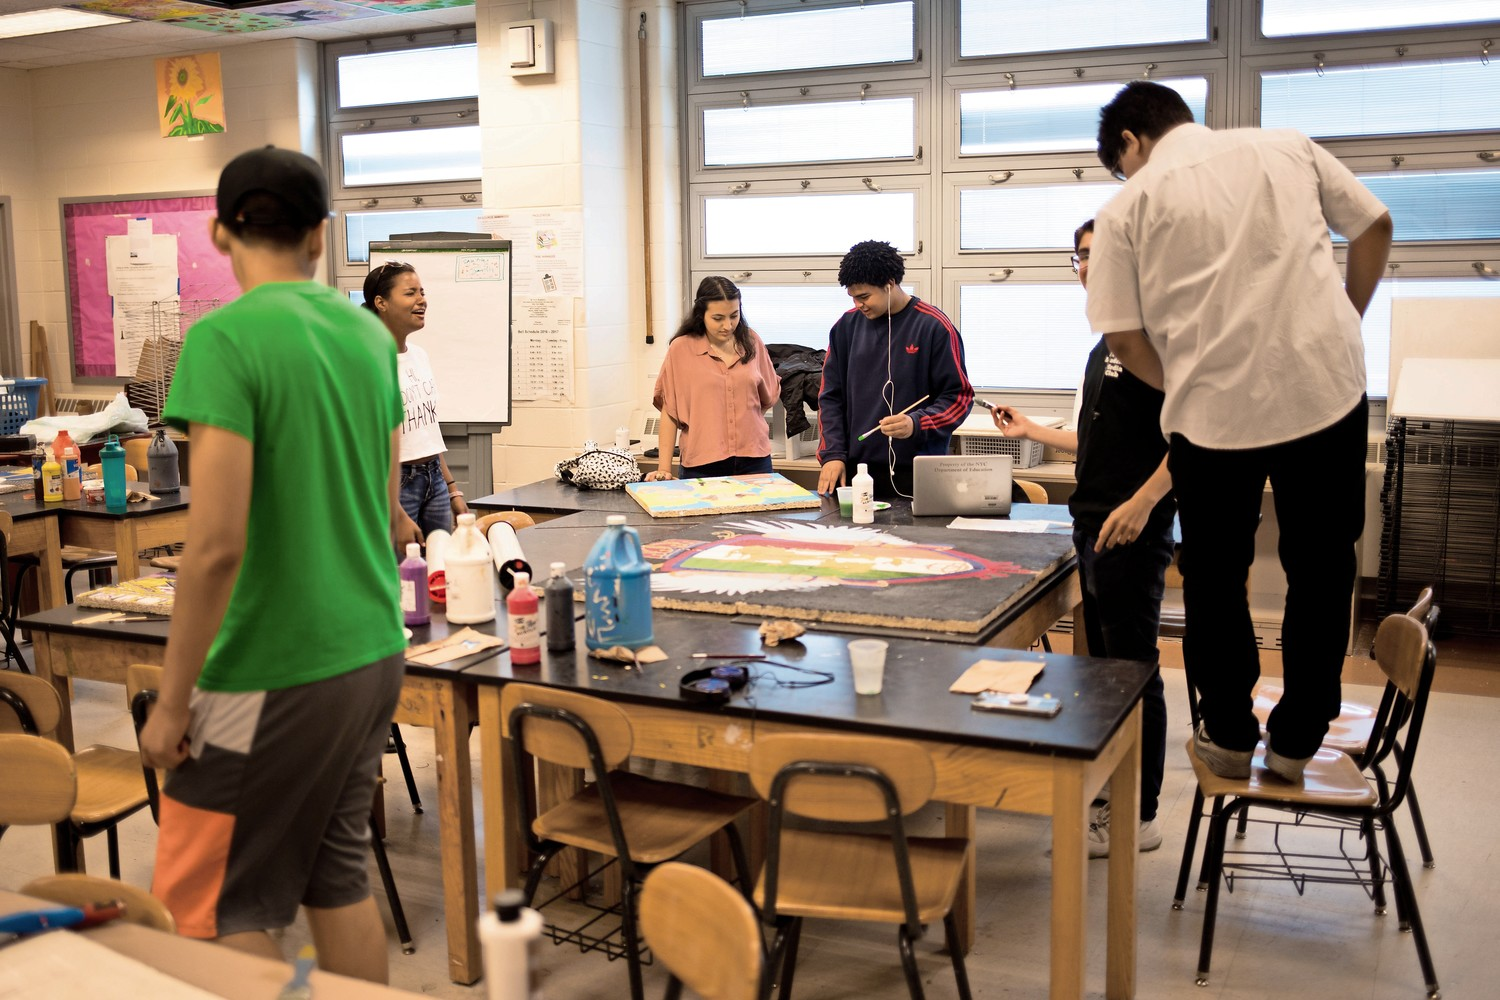 IN-Tech Academy students paint ceiling tiles in the art classroom. Painted ceiling tiles can be found throughout the school. The practice began with Bruno Santini, a newly-retired art teacher.